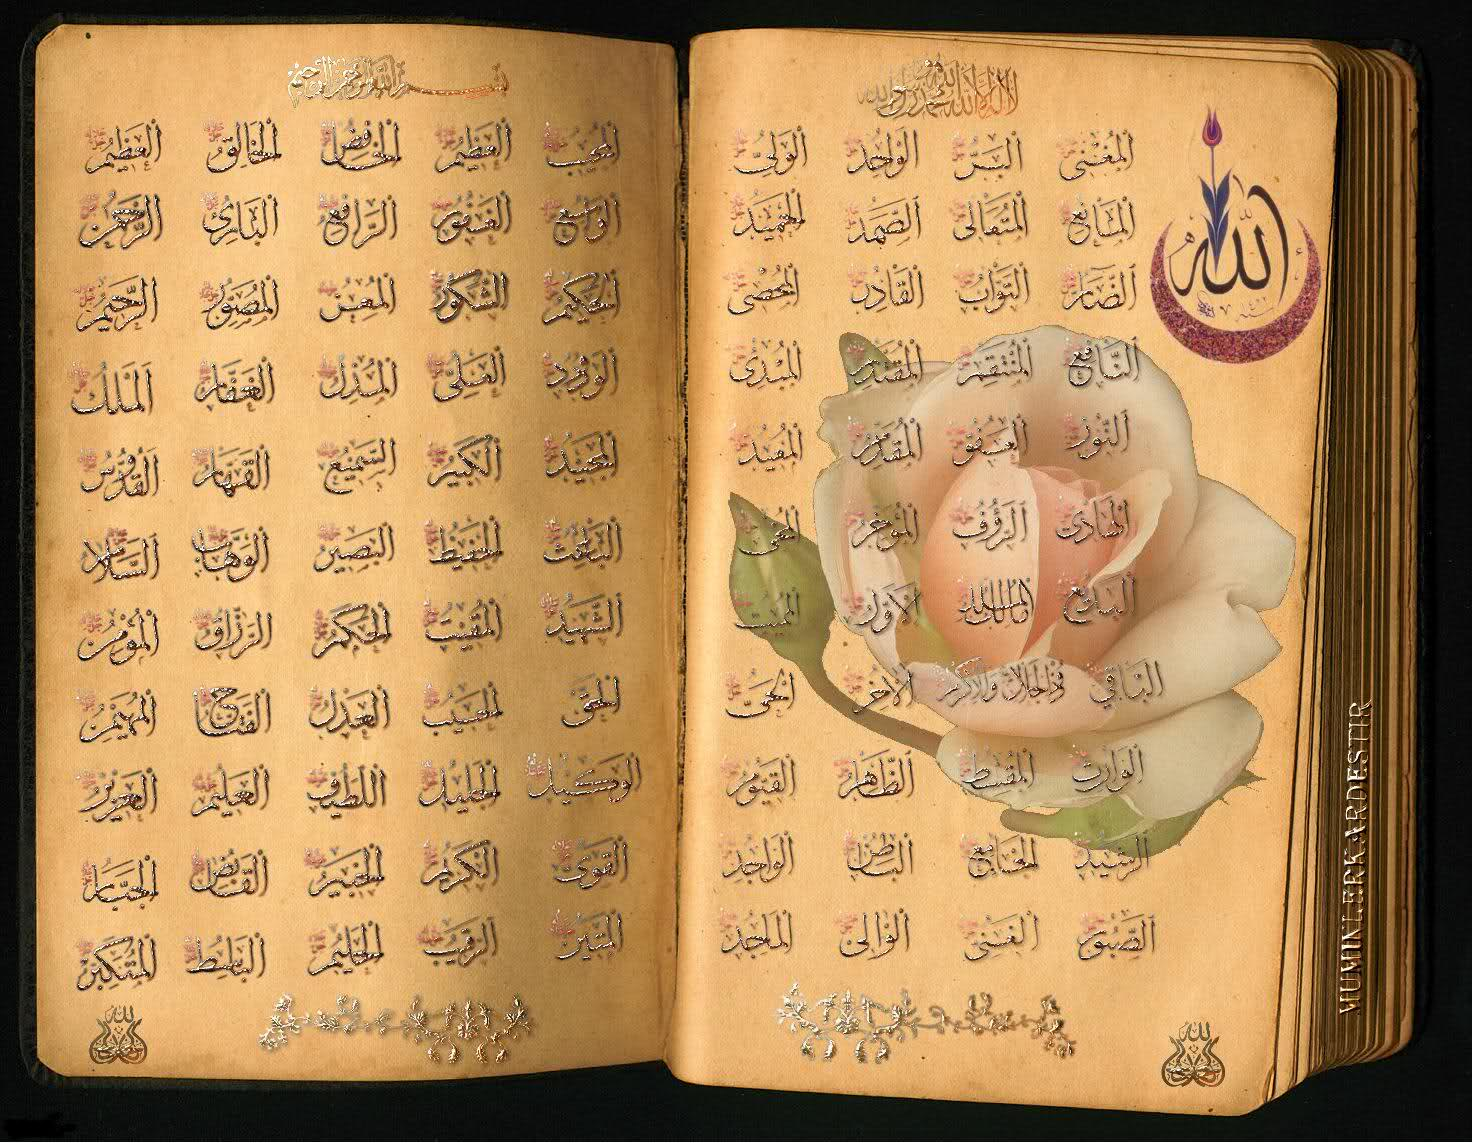 99 Names Of Allah Mp3 (Asmaul Husna) for Android - APK Download